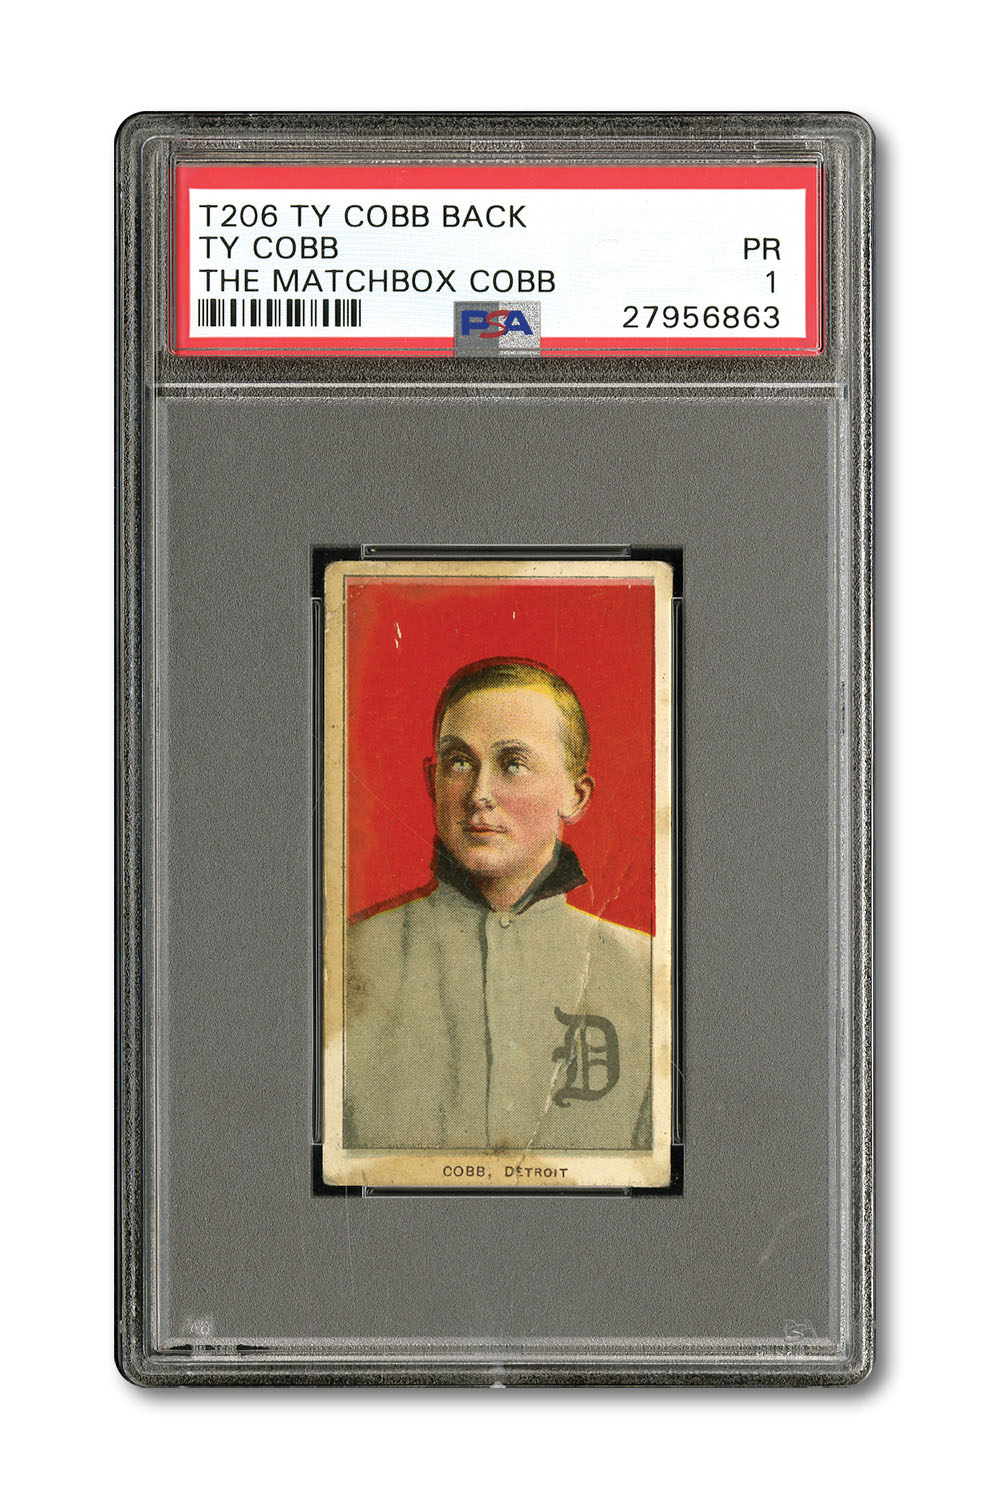 Ty Cobb T206 Cobb back SCP Auctions Georgia find